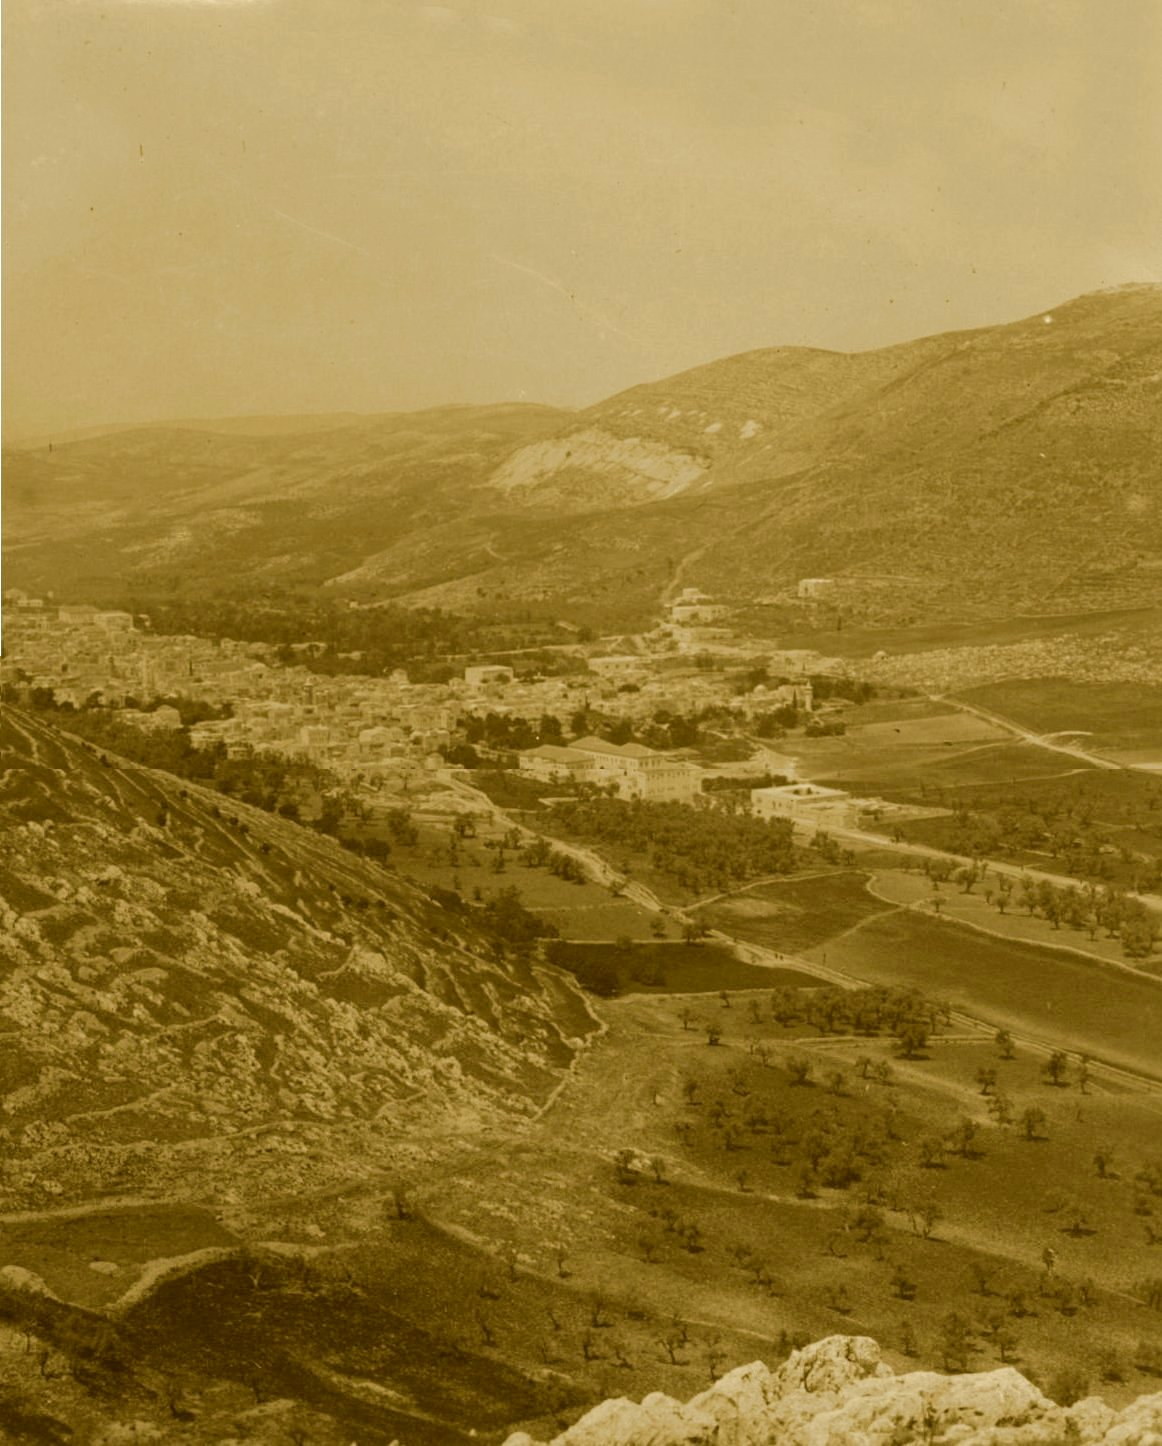 Nablus - نابلس : NABLUS - Late 19th, early 20th c. 82 - The valley and city of Nablus from Mt. Gerizim, circa 1890s (Per Reem Ackall)